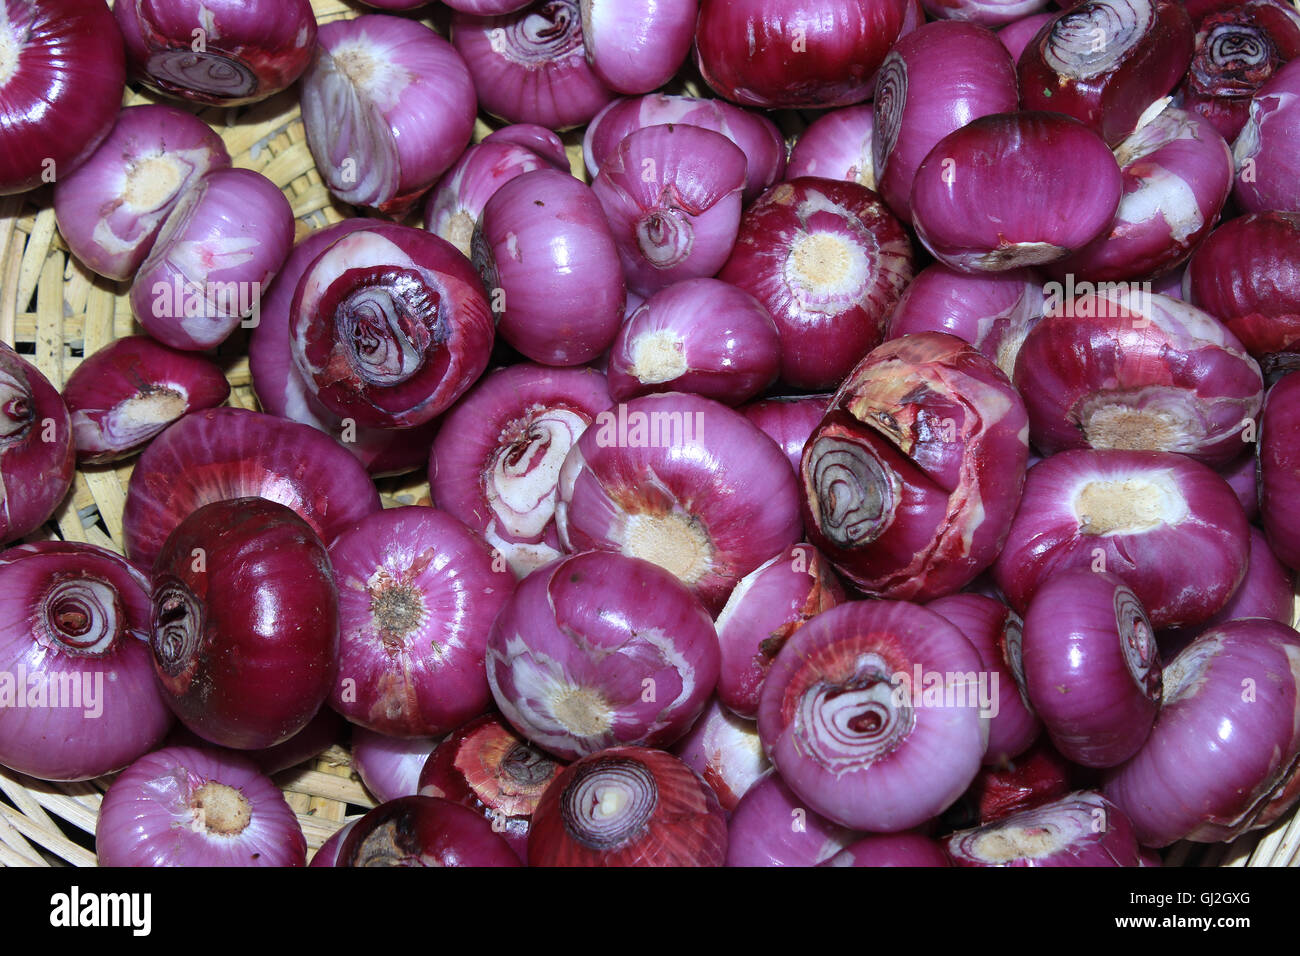 Red onions. Red onions in a basket at a country market after cleaning. - Stock Image